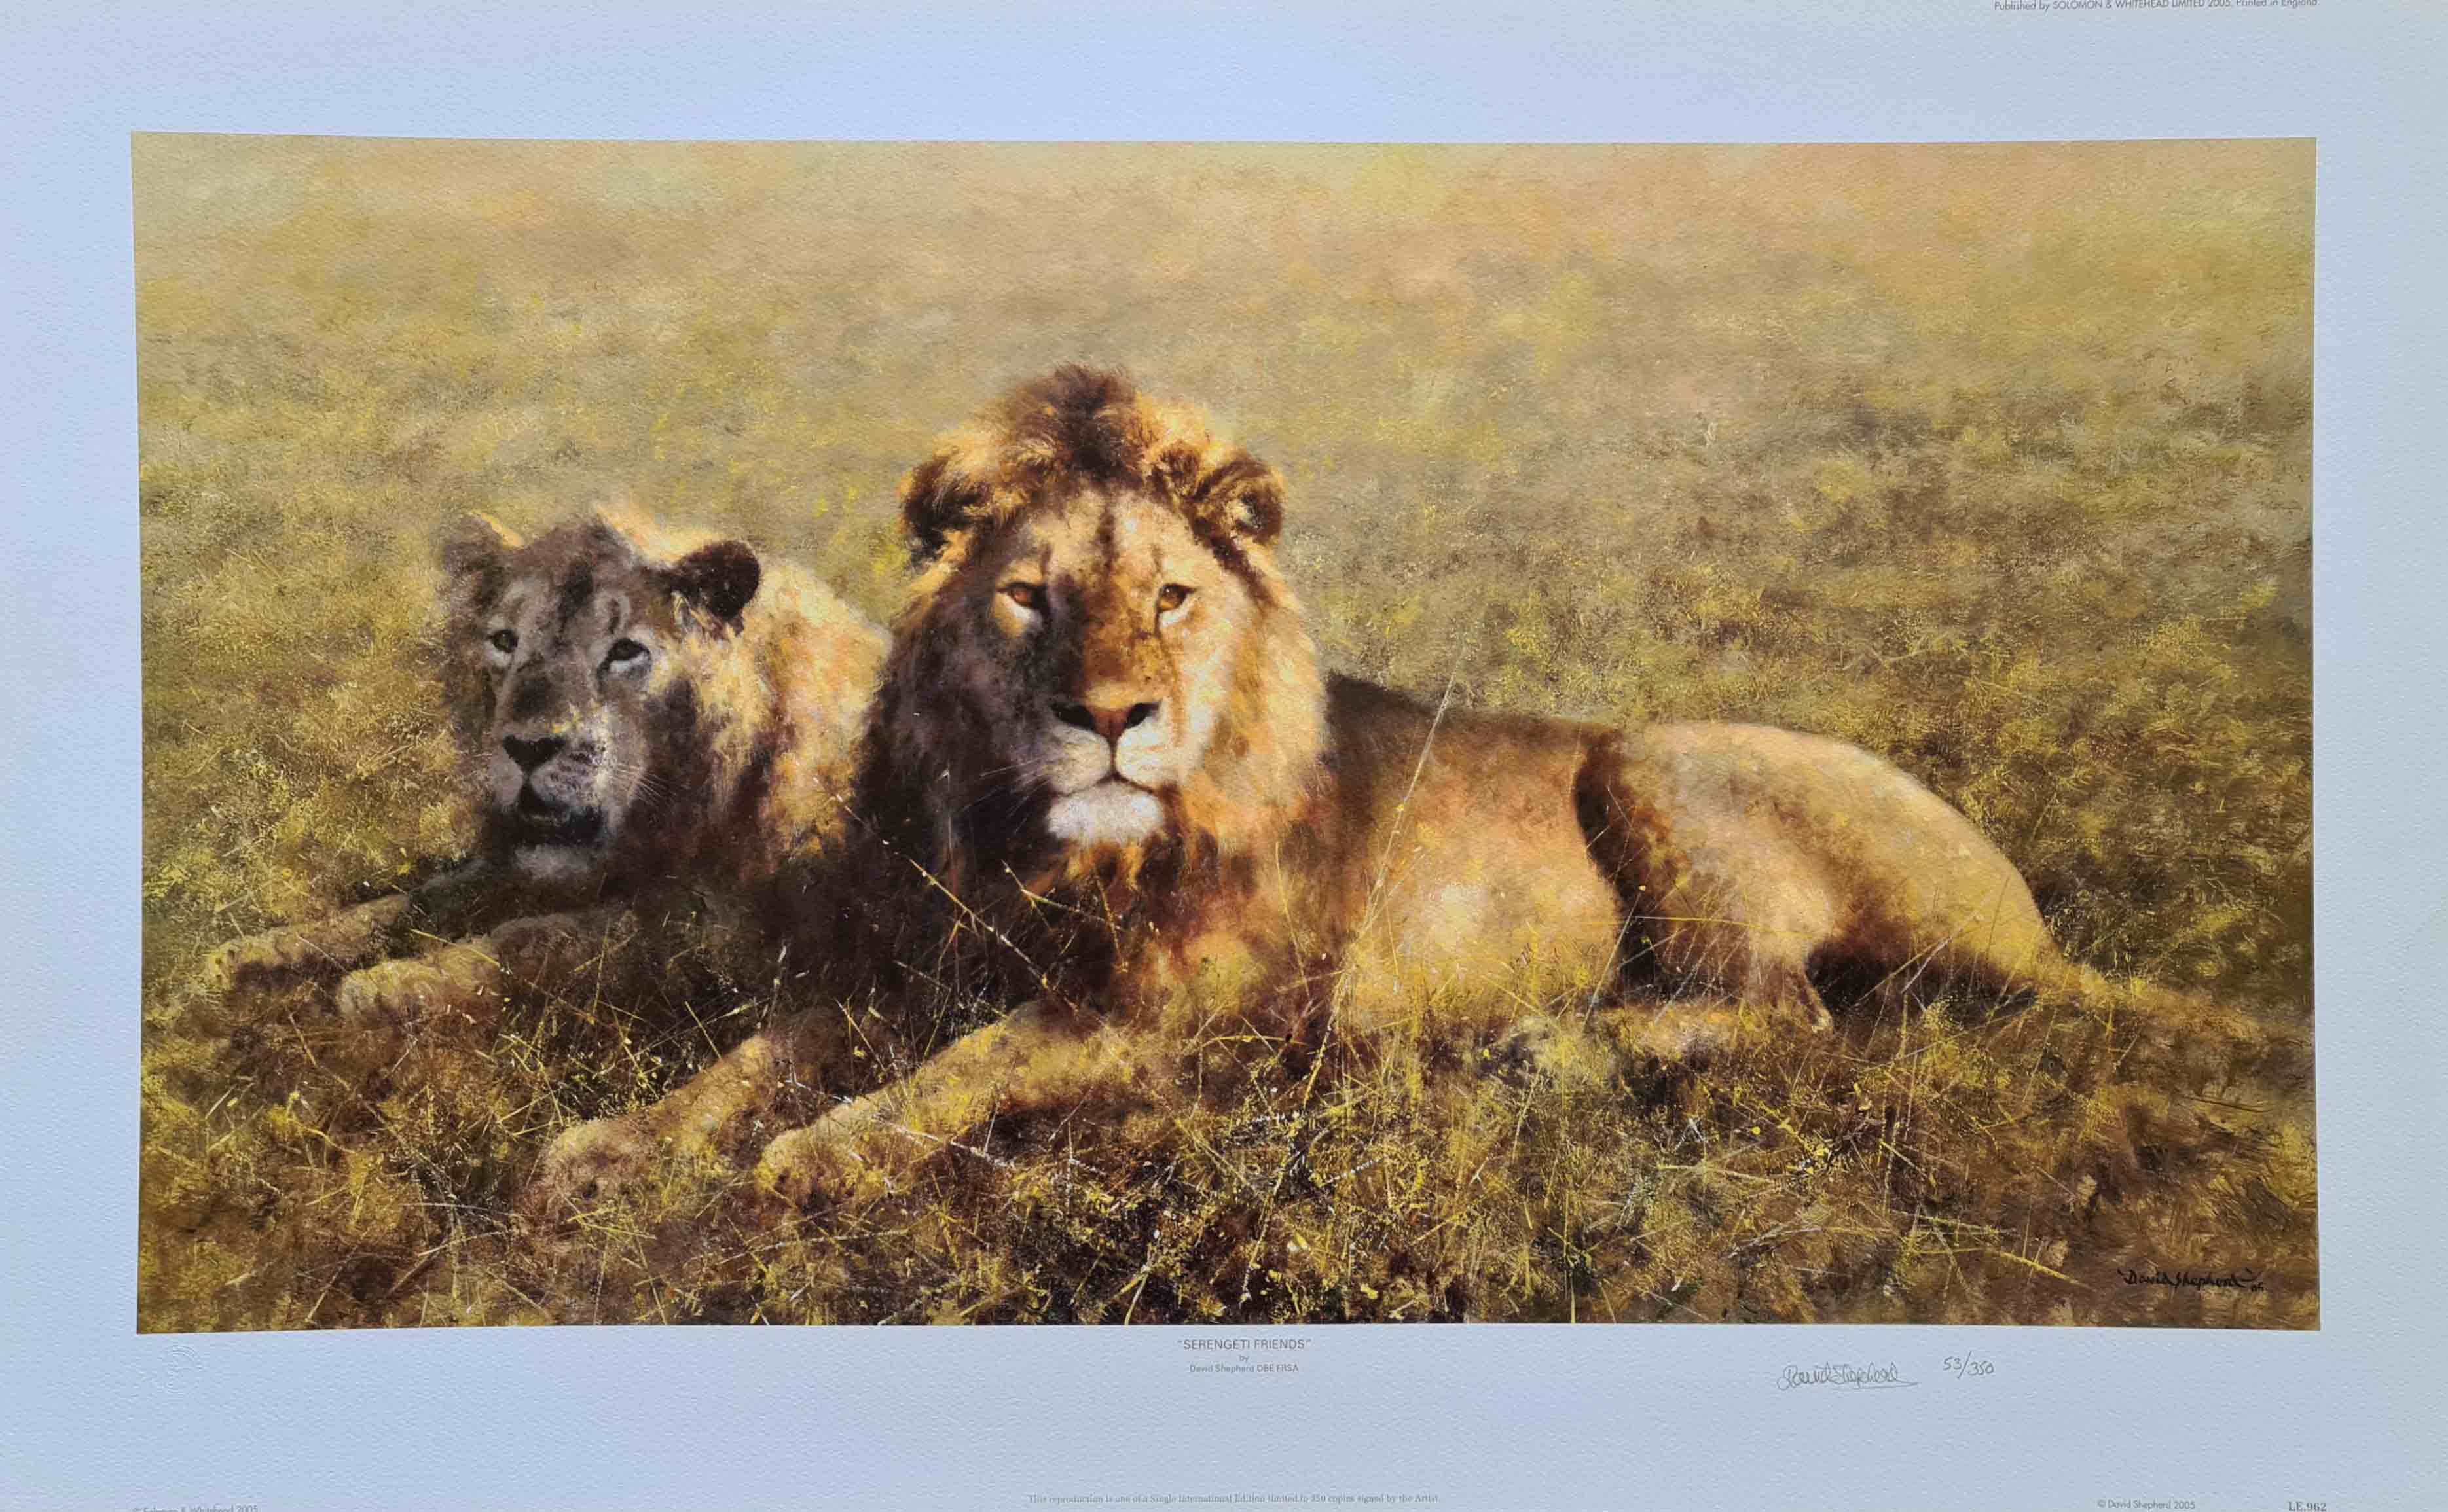 david shepherd signed limited edition print Serengeti friends mounted